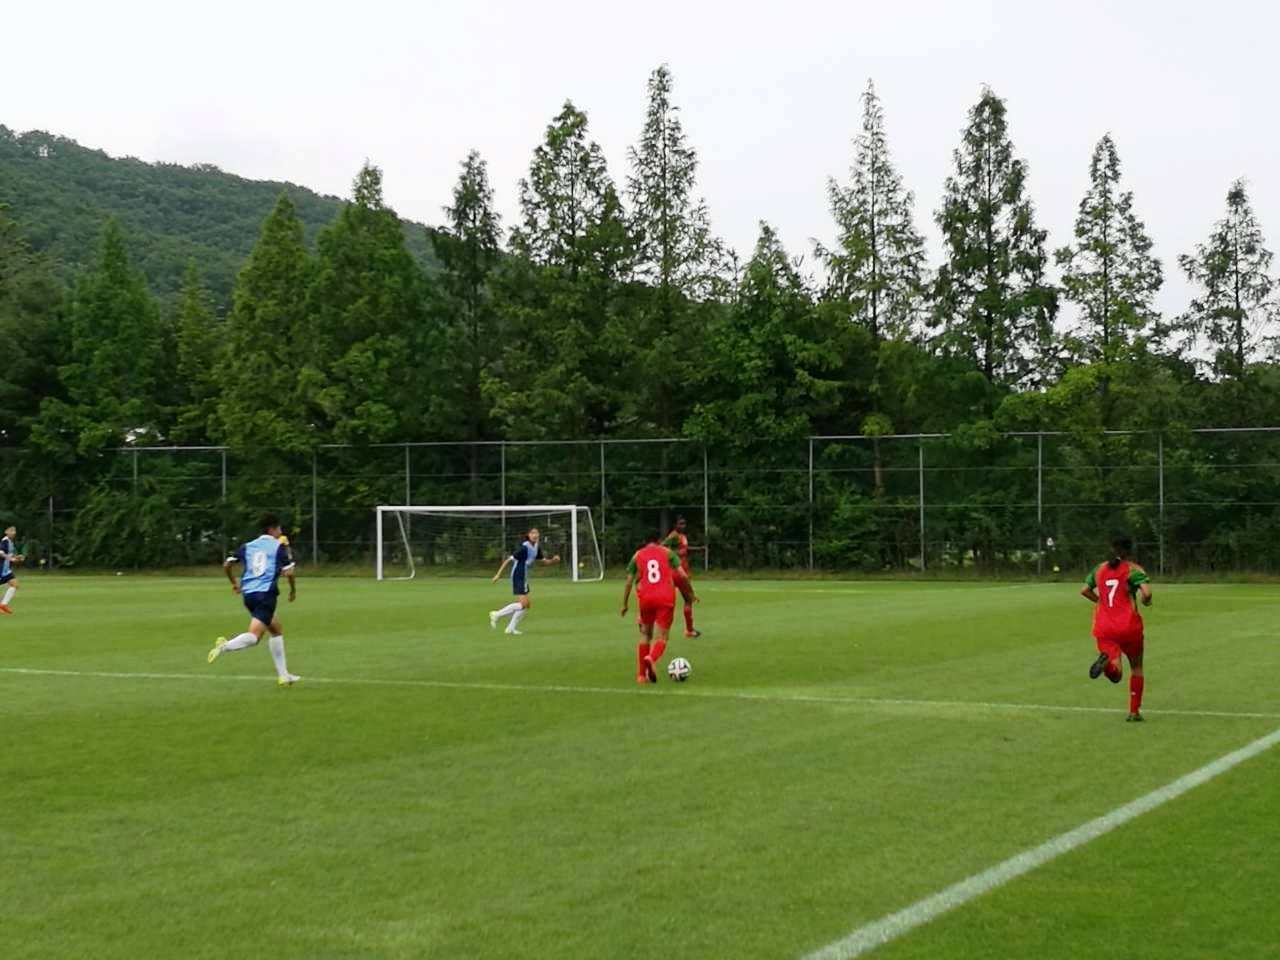 U16 girls come back to draw against S Korean side